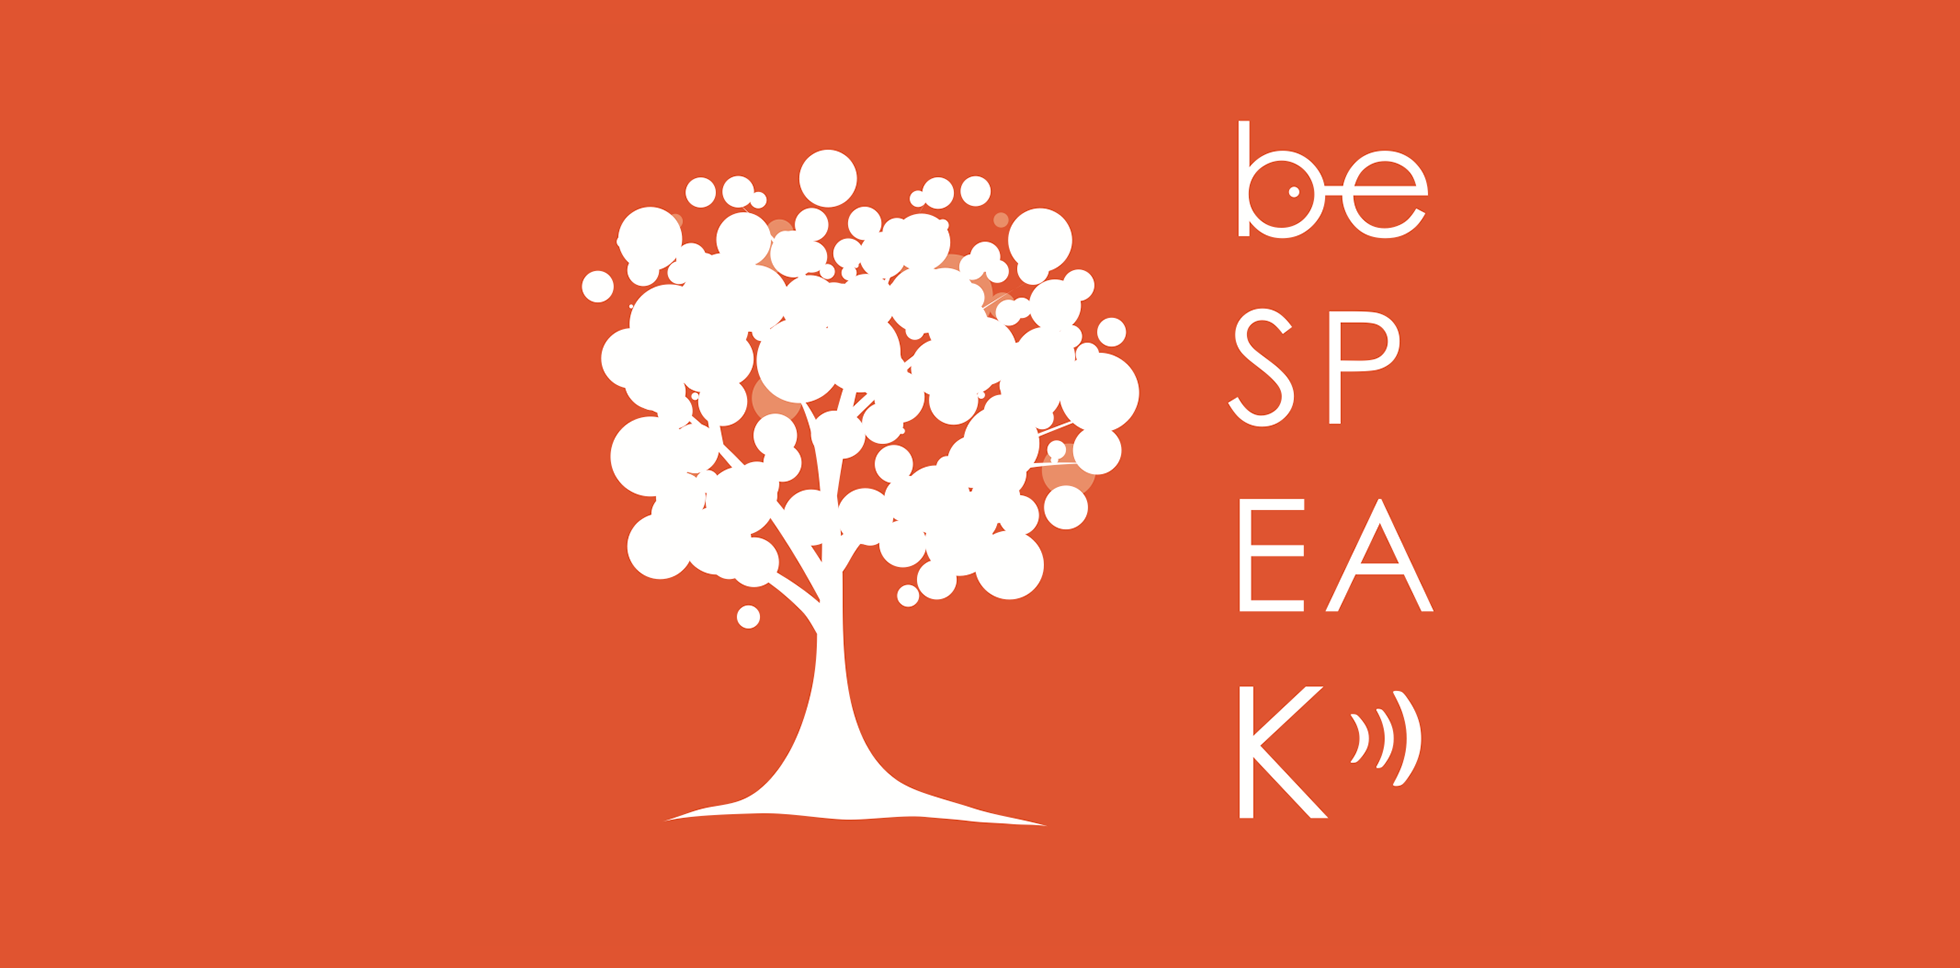 Bespeak Communications